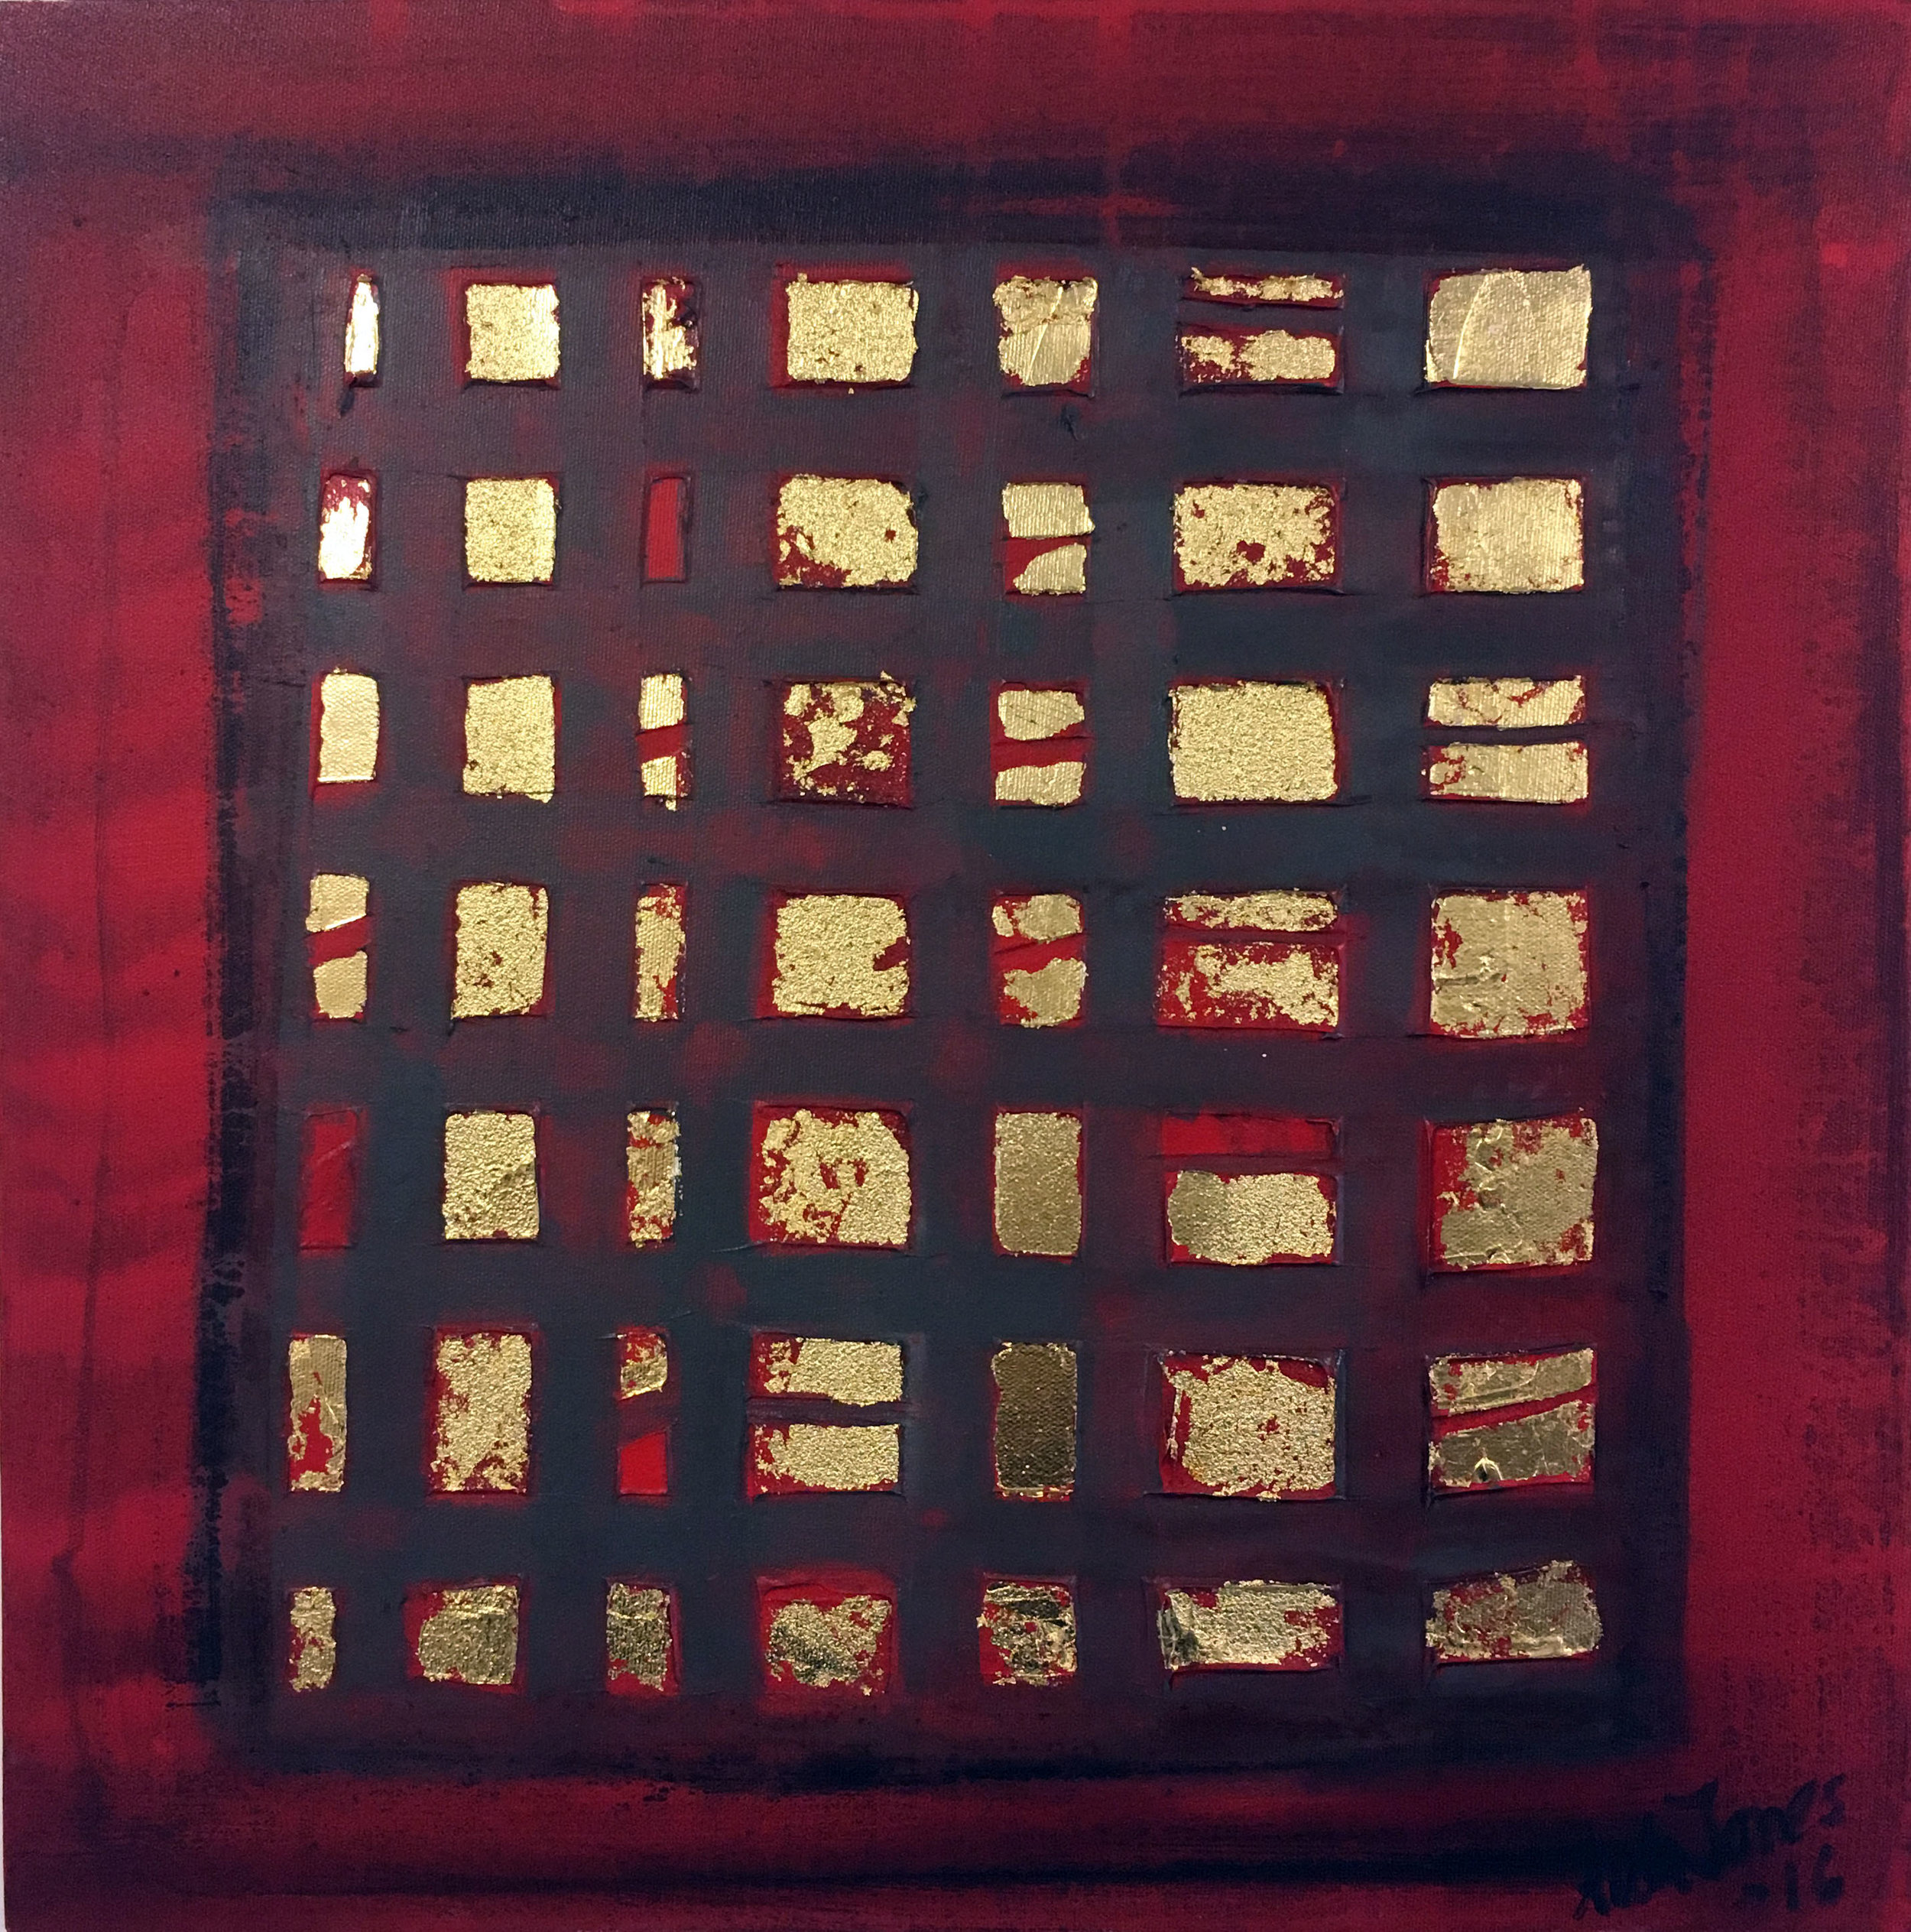 SOLD Red City 18 x 18 Acrylic, Gold Leaf, Mixed Media on Canvas